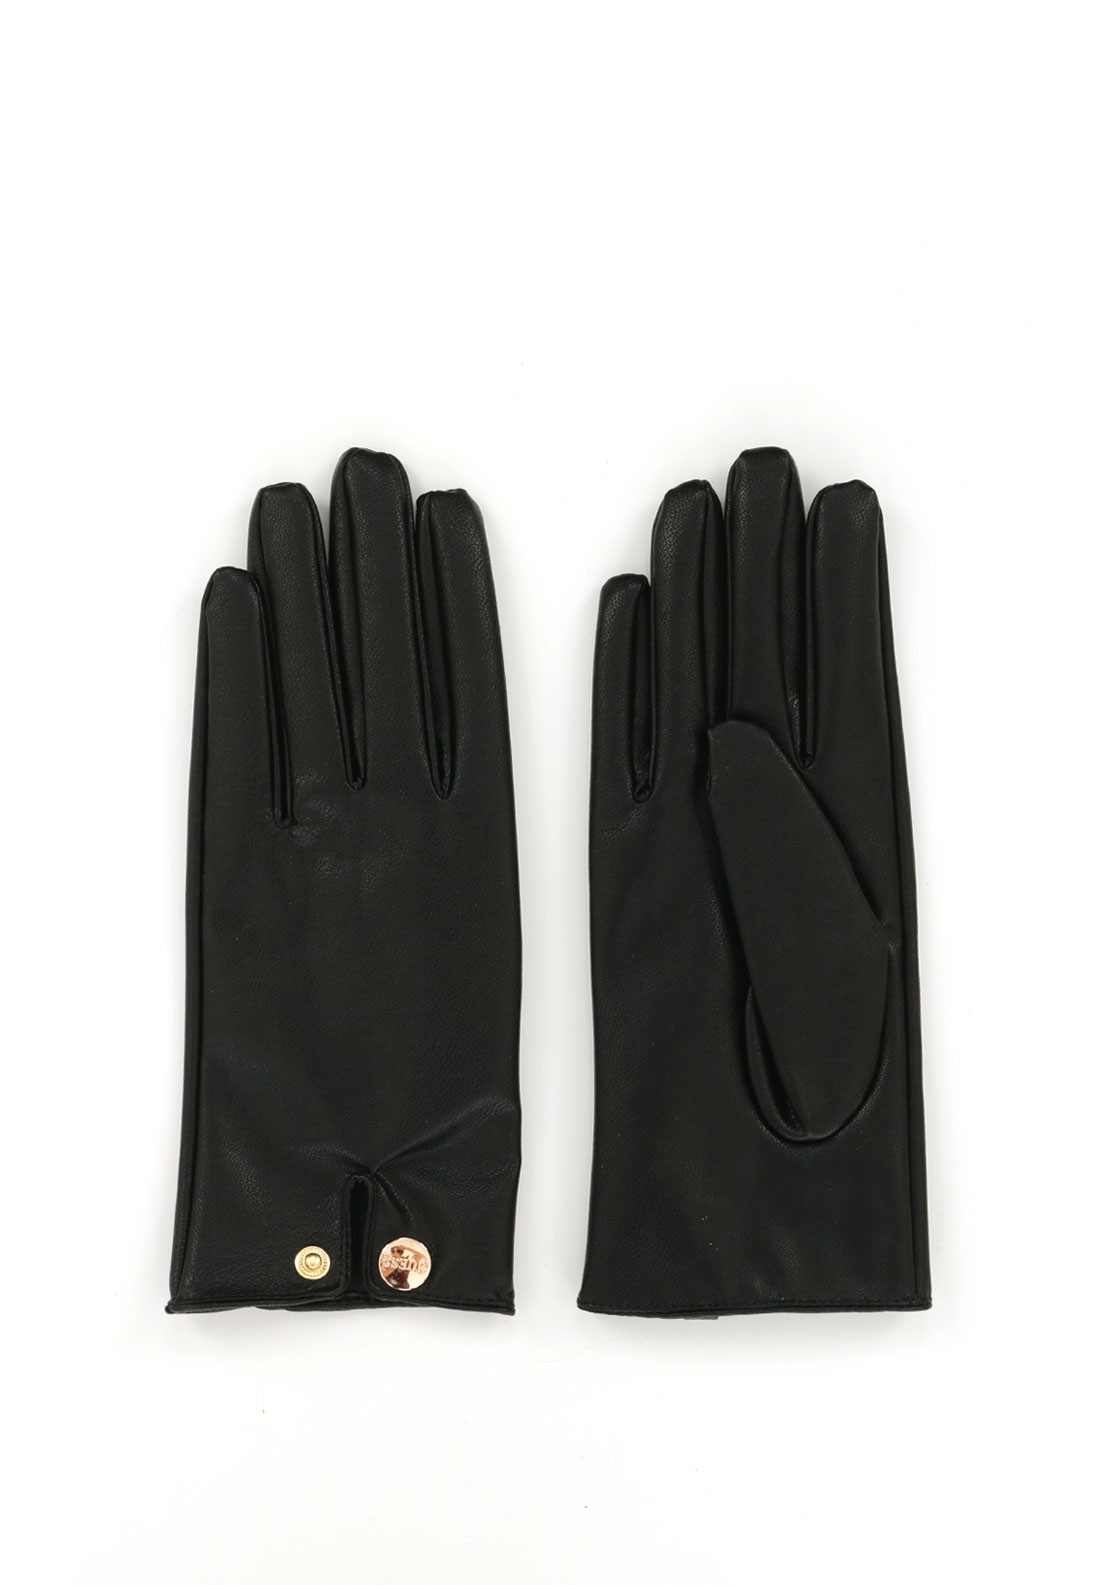 Guess Faux Leather Gloves, Black